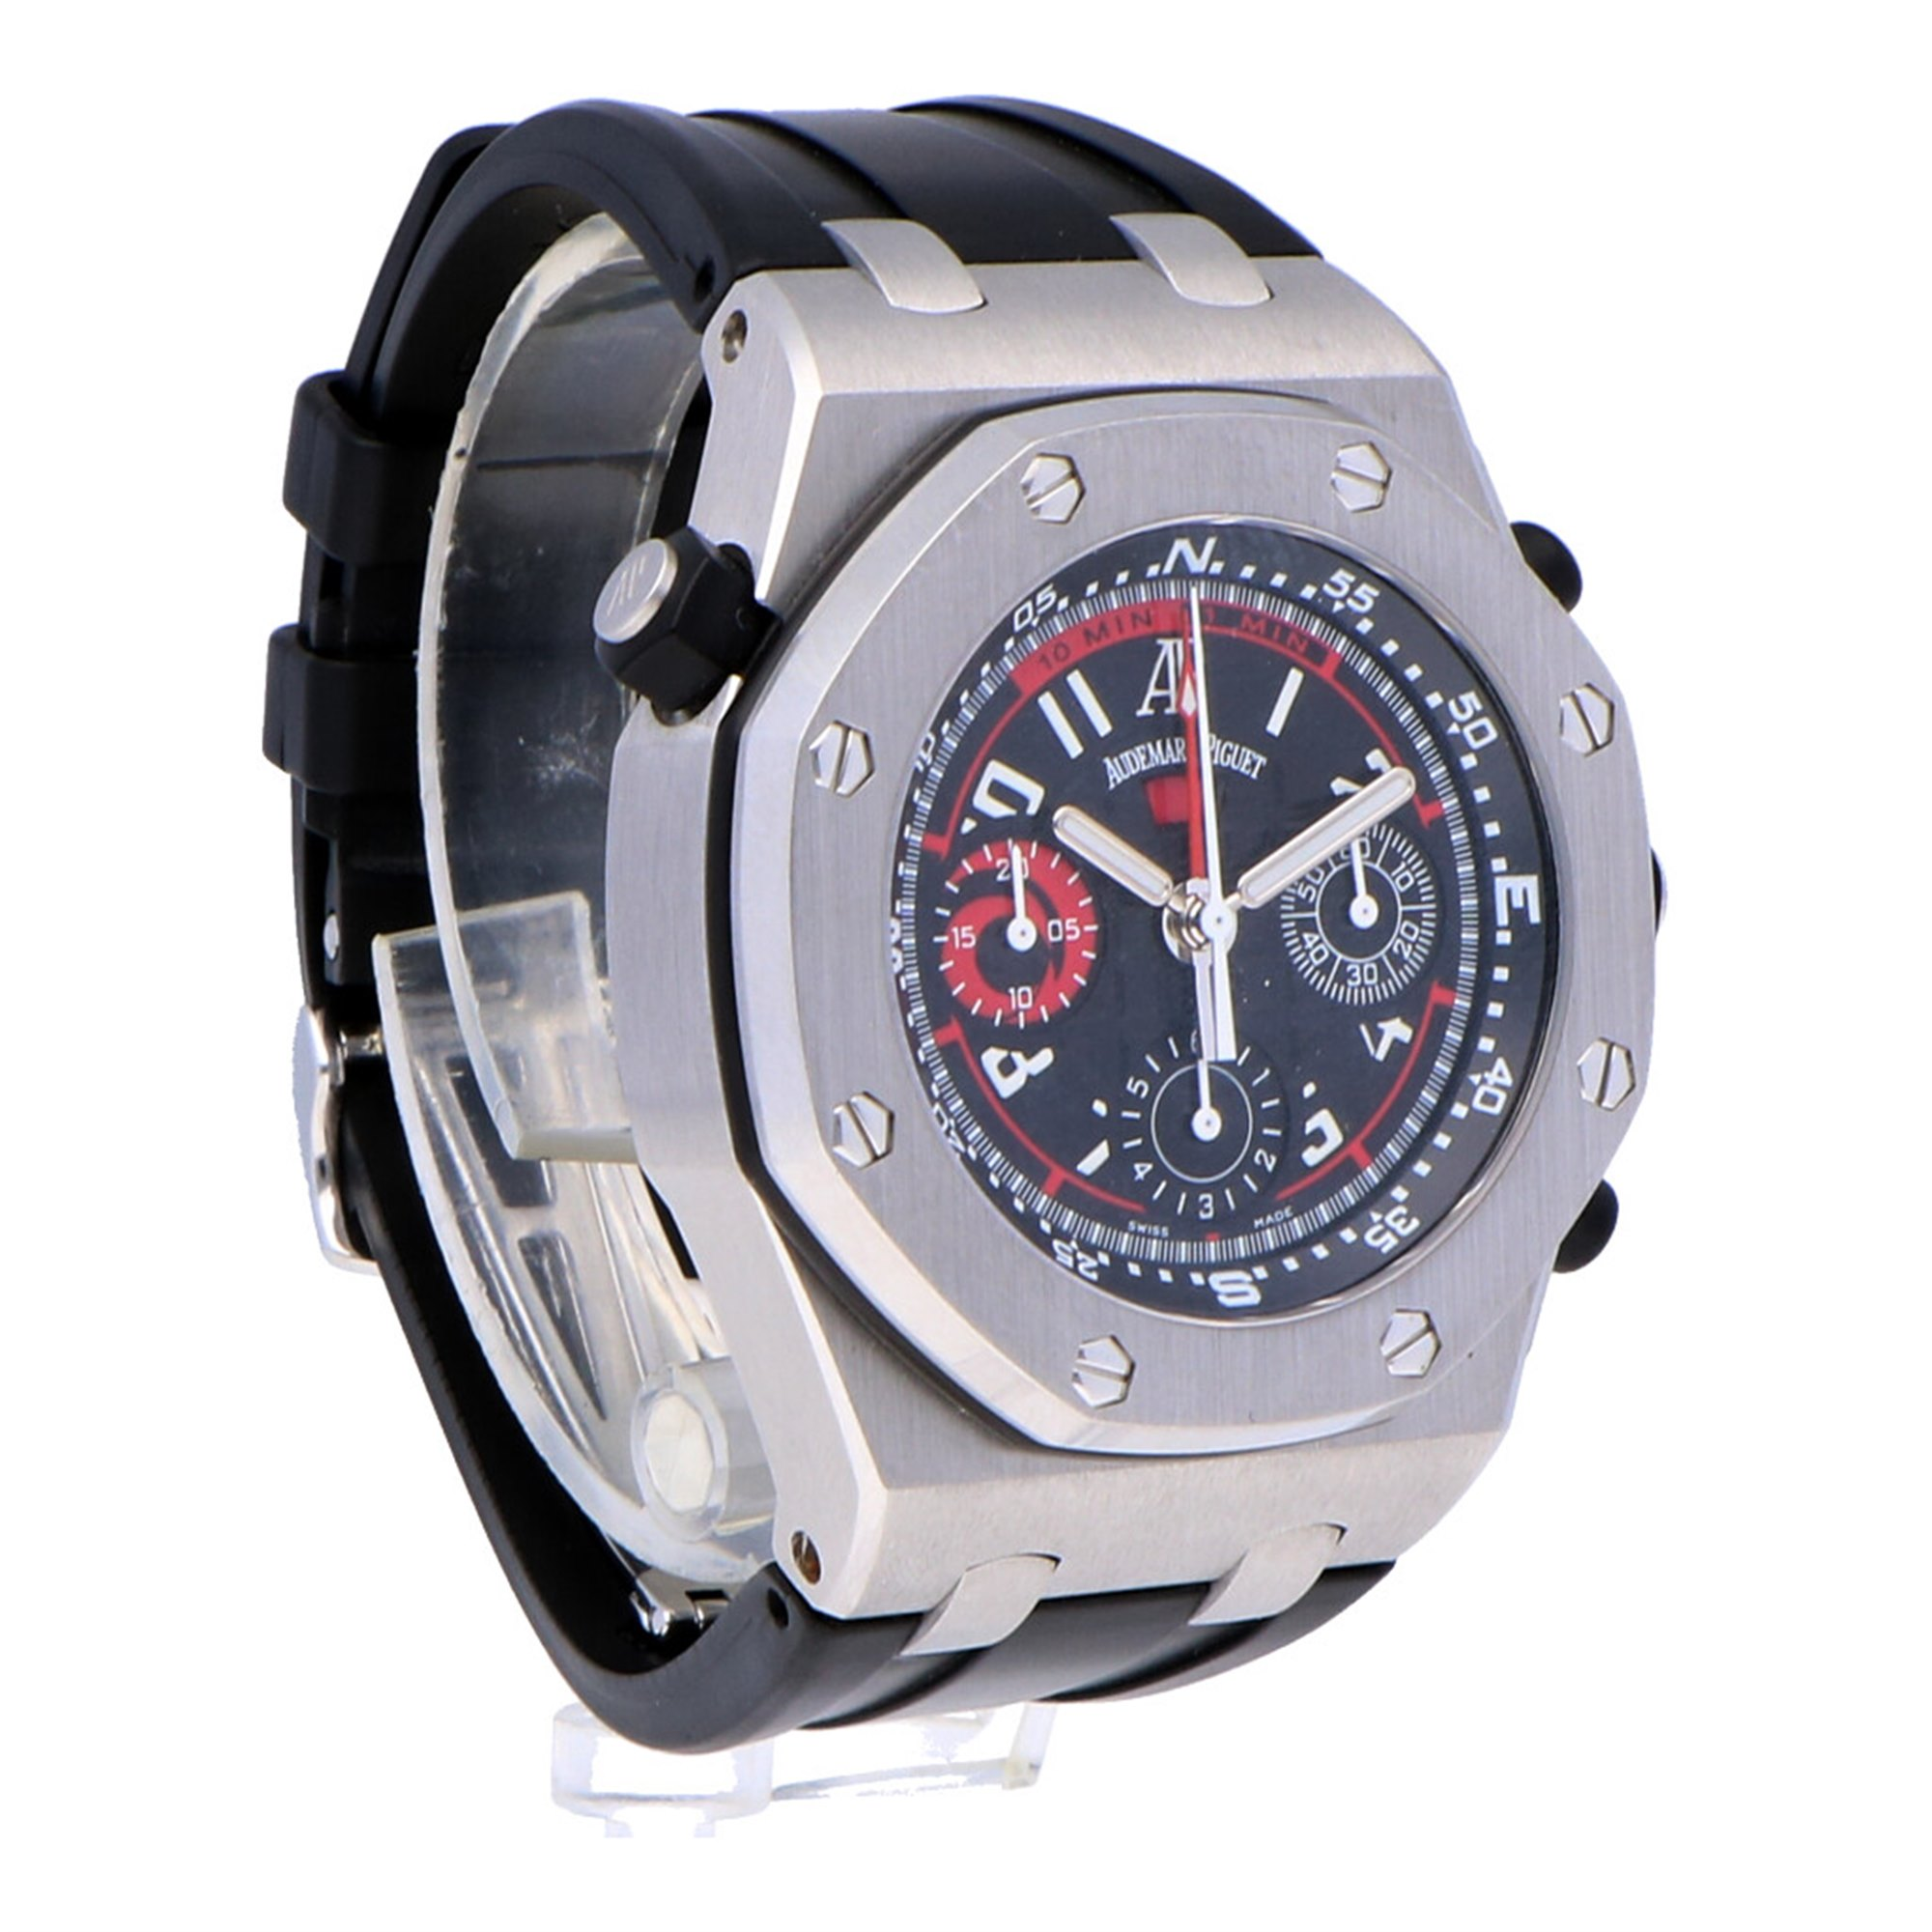 Audemars Piguet Royal Oak Offshore Stainless Steel 26040ST.OO.D002CA.01